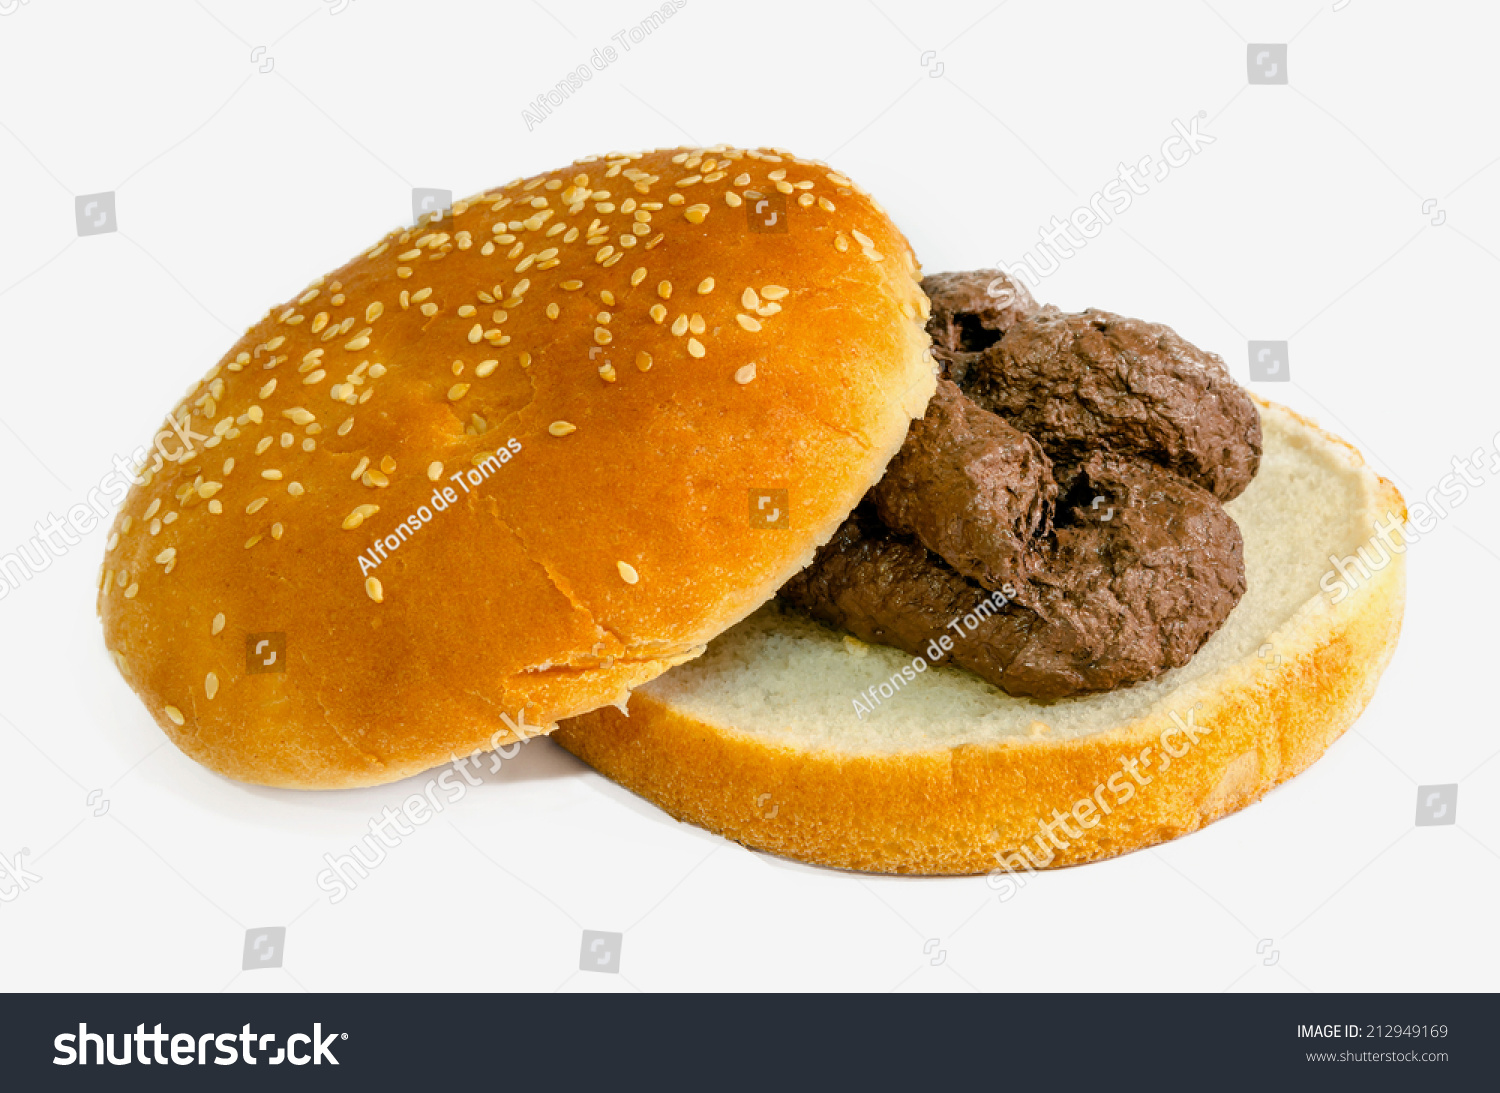 Stock Photo Shit Burger Fast Food Is Garbage Concept Unpleasant Stinky